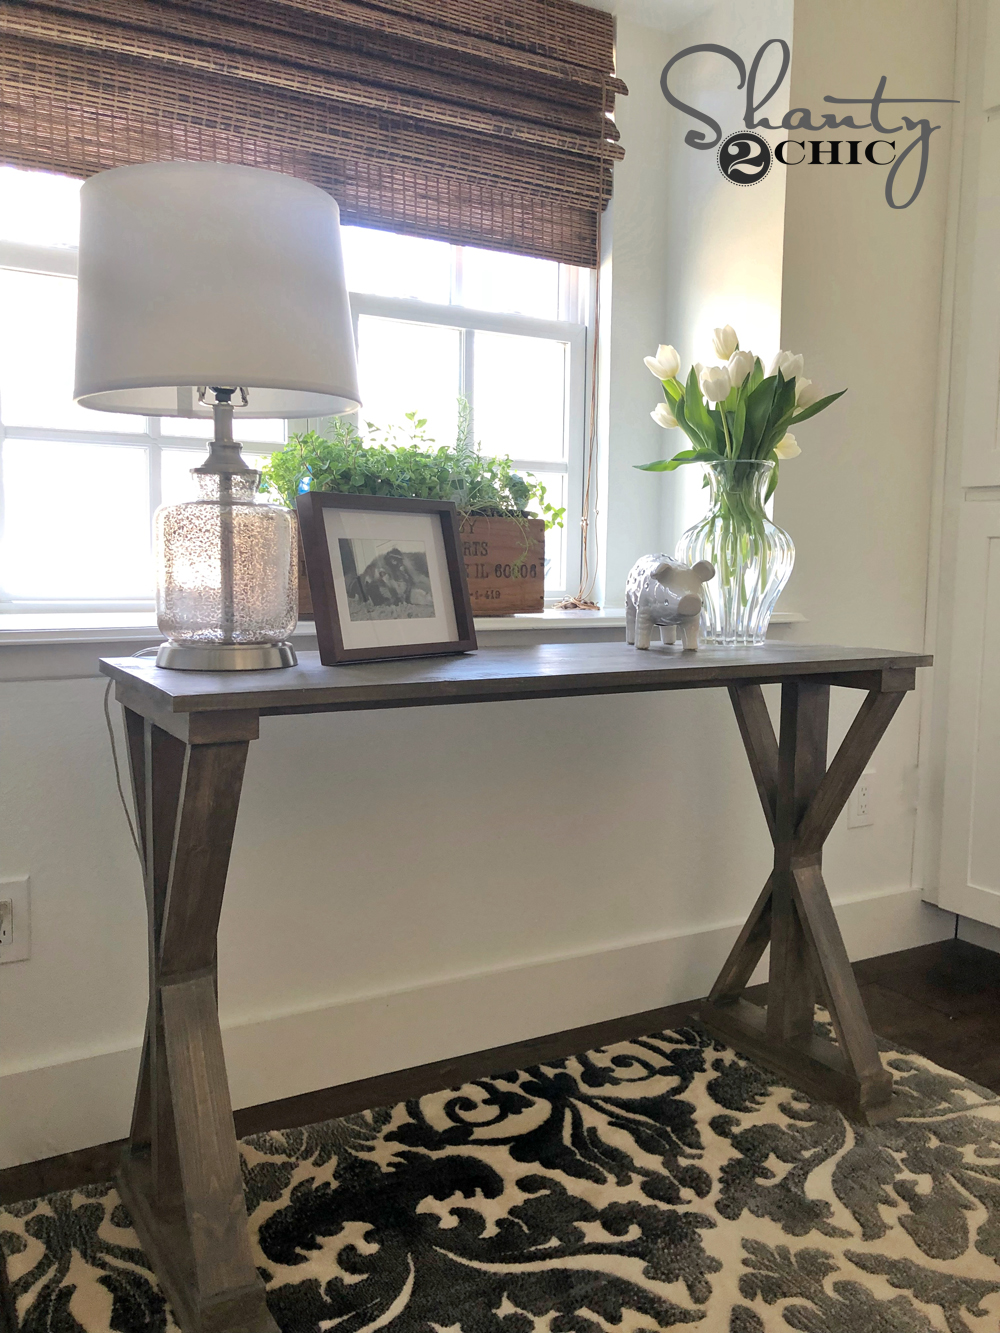 DIY 6 Board Farmhouse Desk Tutorial